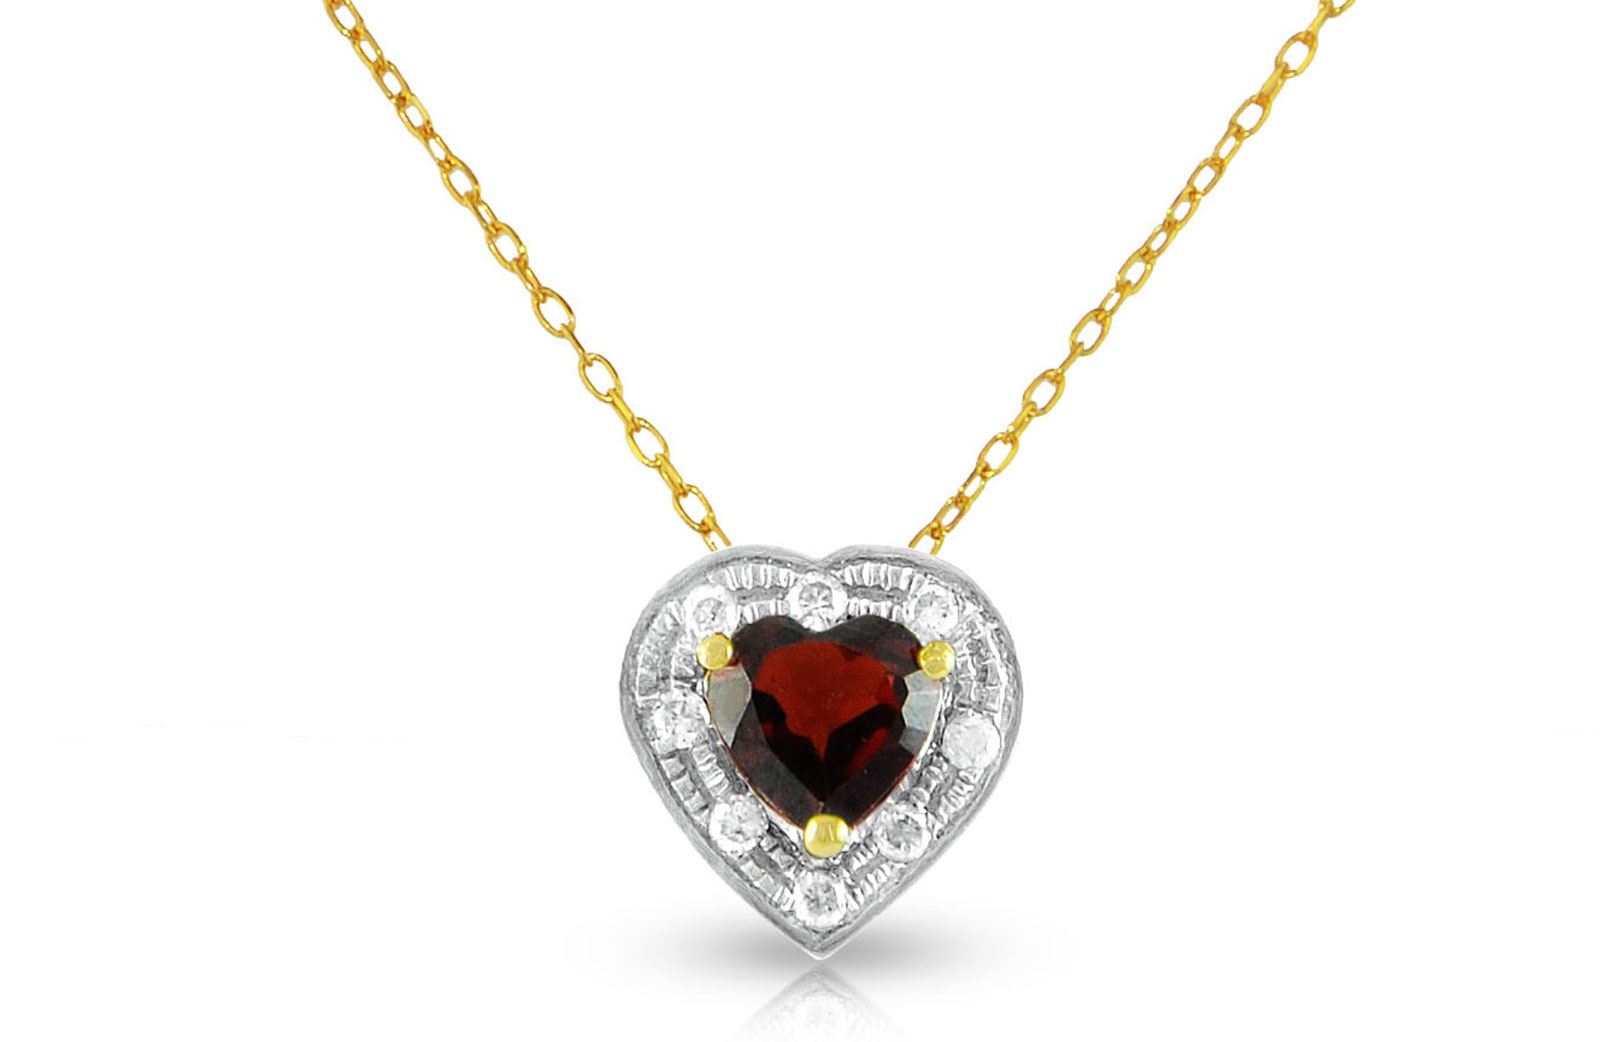 Vera Perla 18K Solid Gold and 0.08Cts Diamonds and 5mm Genuine Garnet Heart Necklace